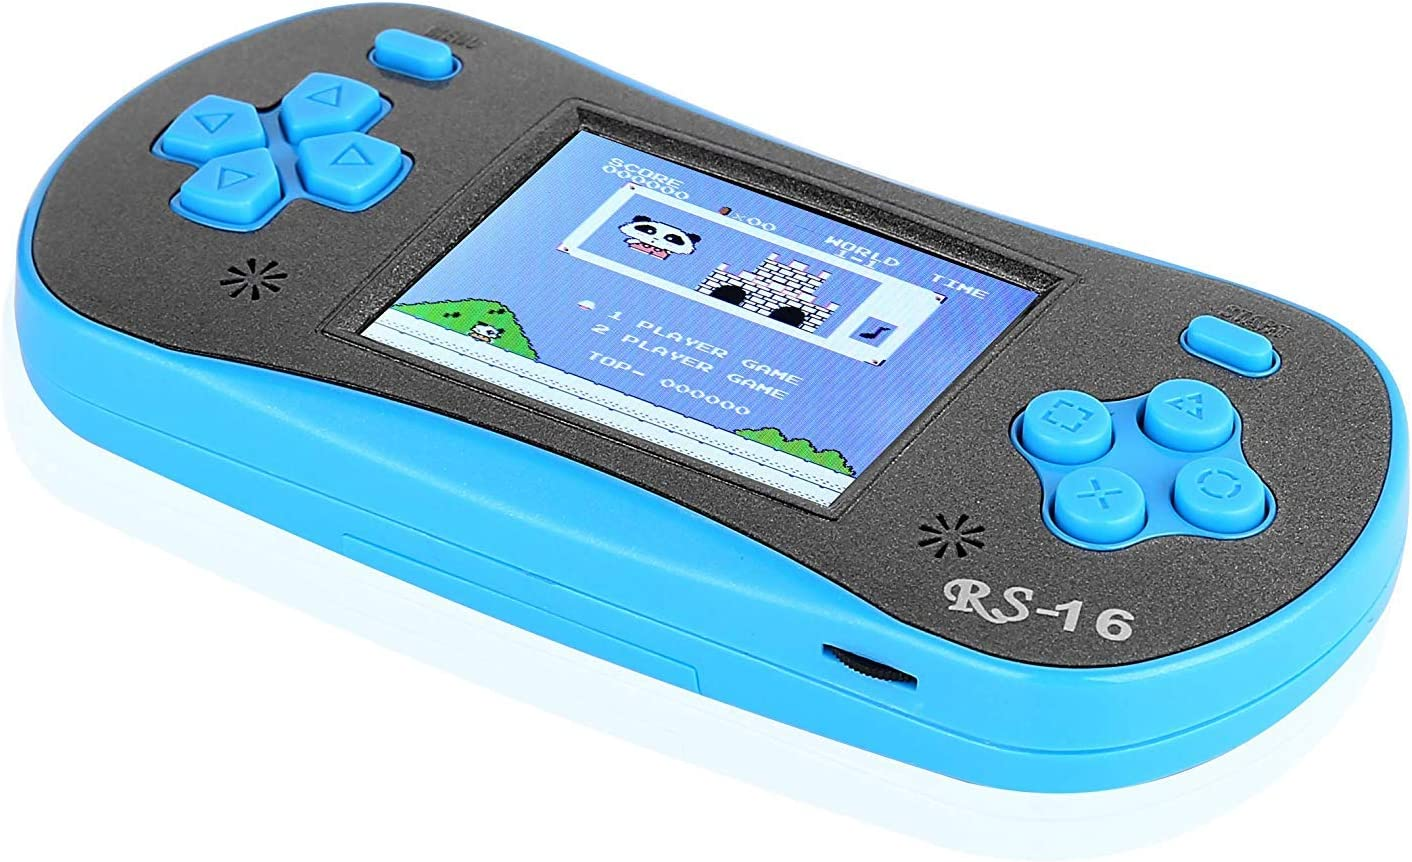 free shipping FAMILY Discount mail order POCKET RS-16 Kids Handheld Game Gamer Portable Video Retr